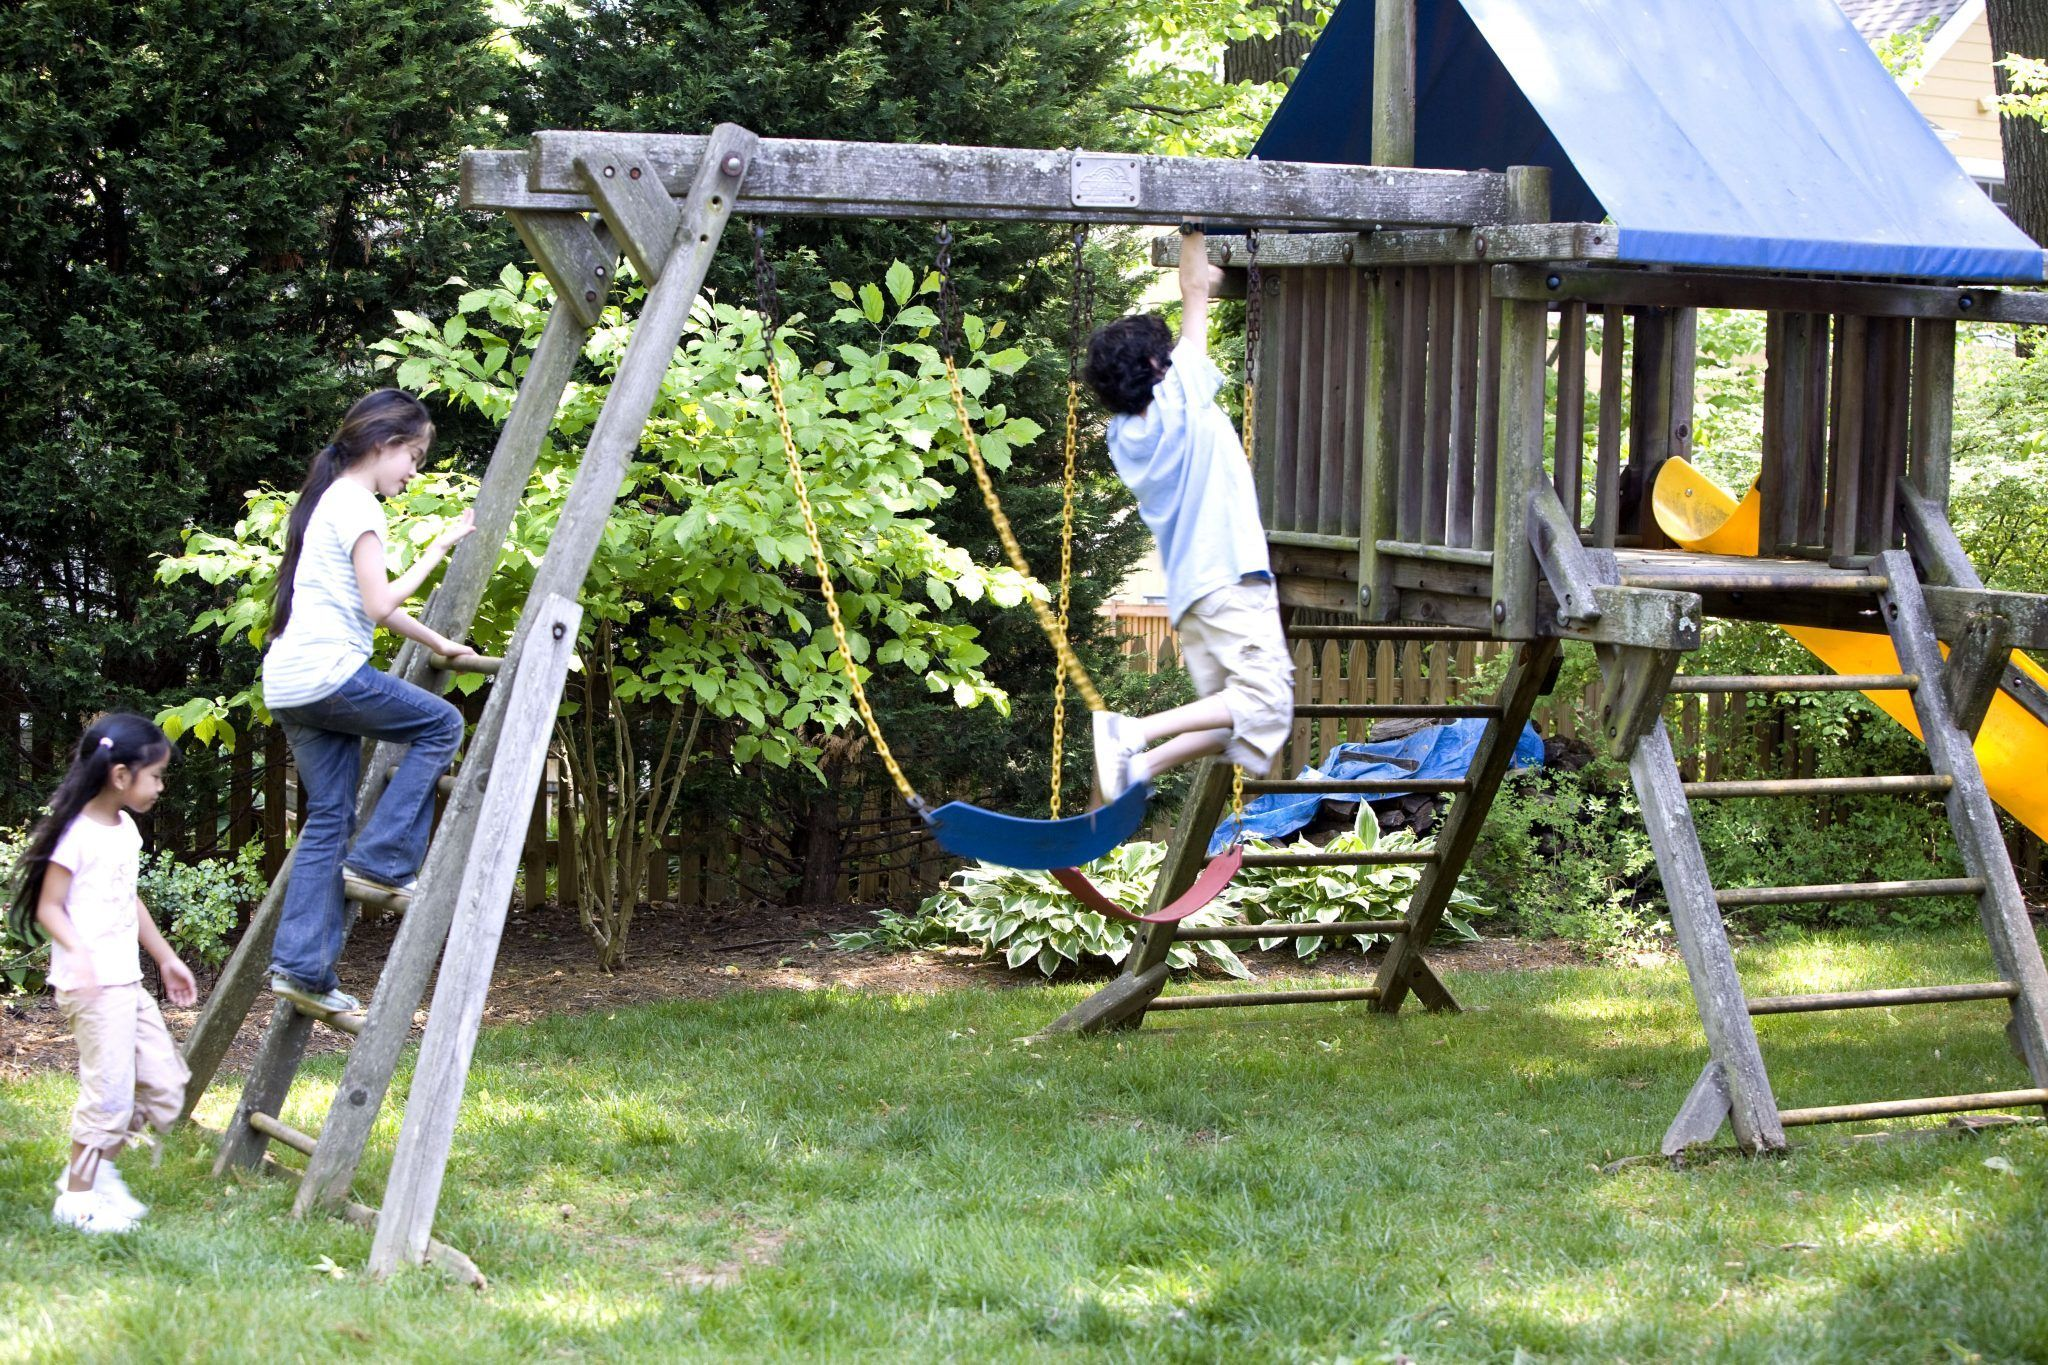 Kid-Friendly Backyard Ideas for Your Home | ElectroSawHQ.com on family farm ideas, family laundry ideas, family car ideas, family entry ideas, dining room ideas, family great room ideas, back patio ideas, family bed ideas, family house ideas, family design ideas, family gardening ideas, family deck ideas, family travel ideas, family foyer ideas, family flooring ideas, family spas, landscape property line ideas, sloped yard ideas, family garage ideas, family parties ideas,